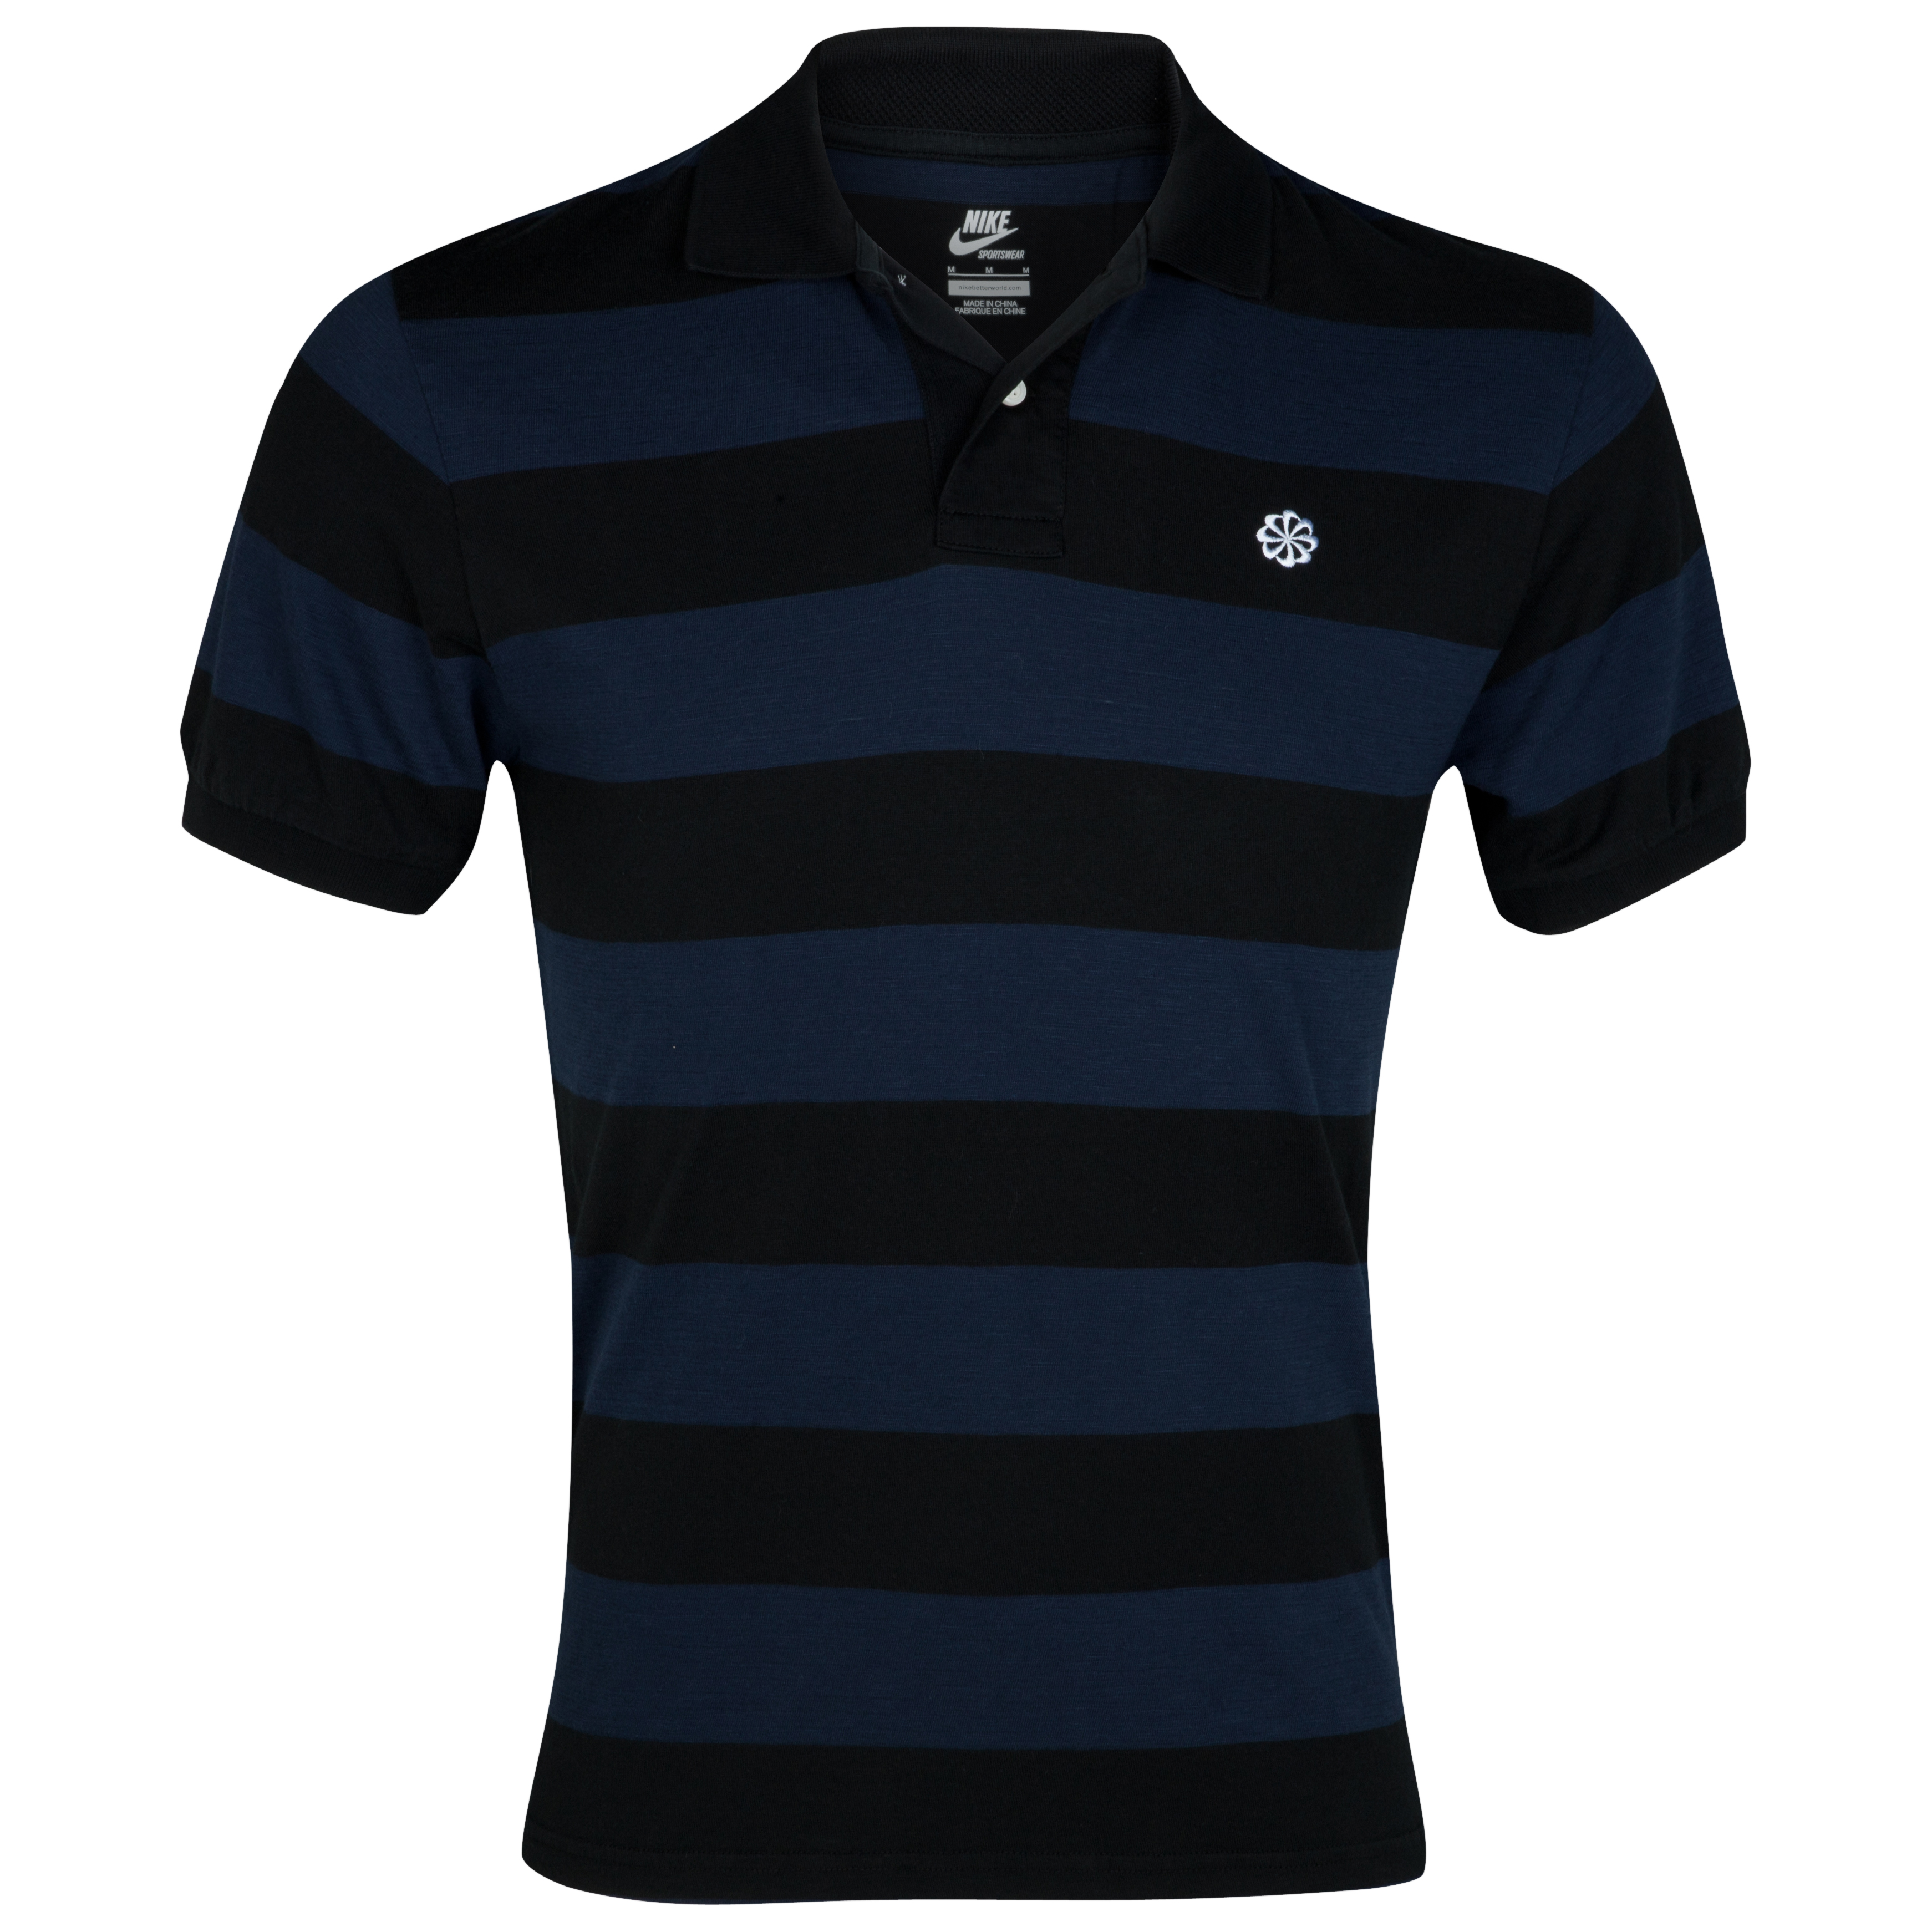 Nike GS Covert Stripe Polo - Obsidian/Black/White